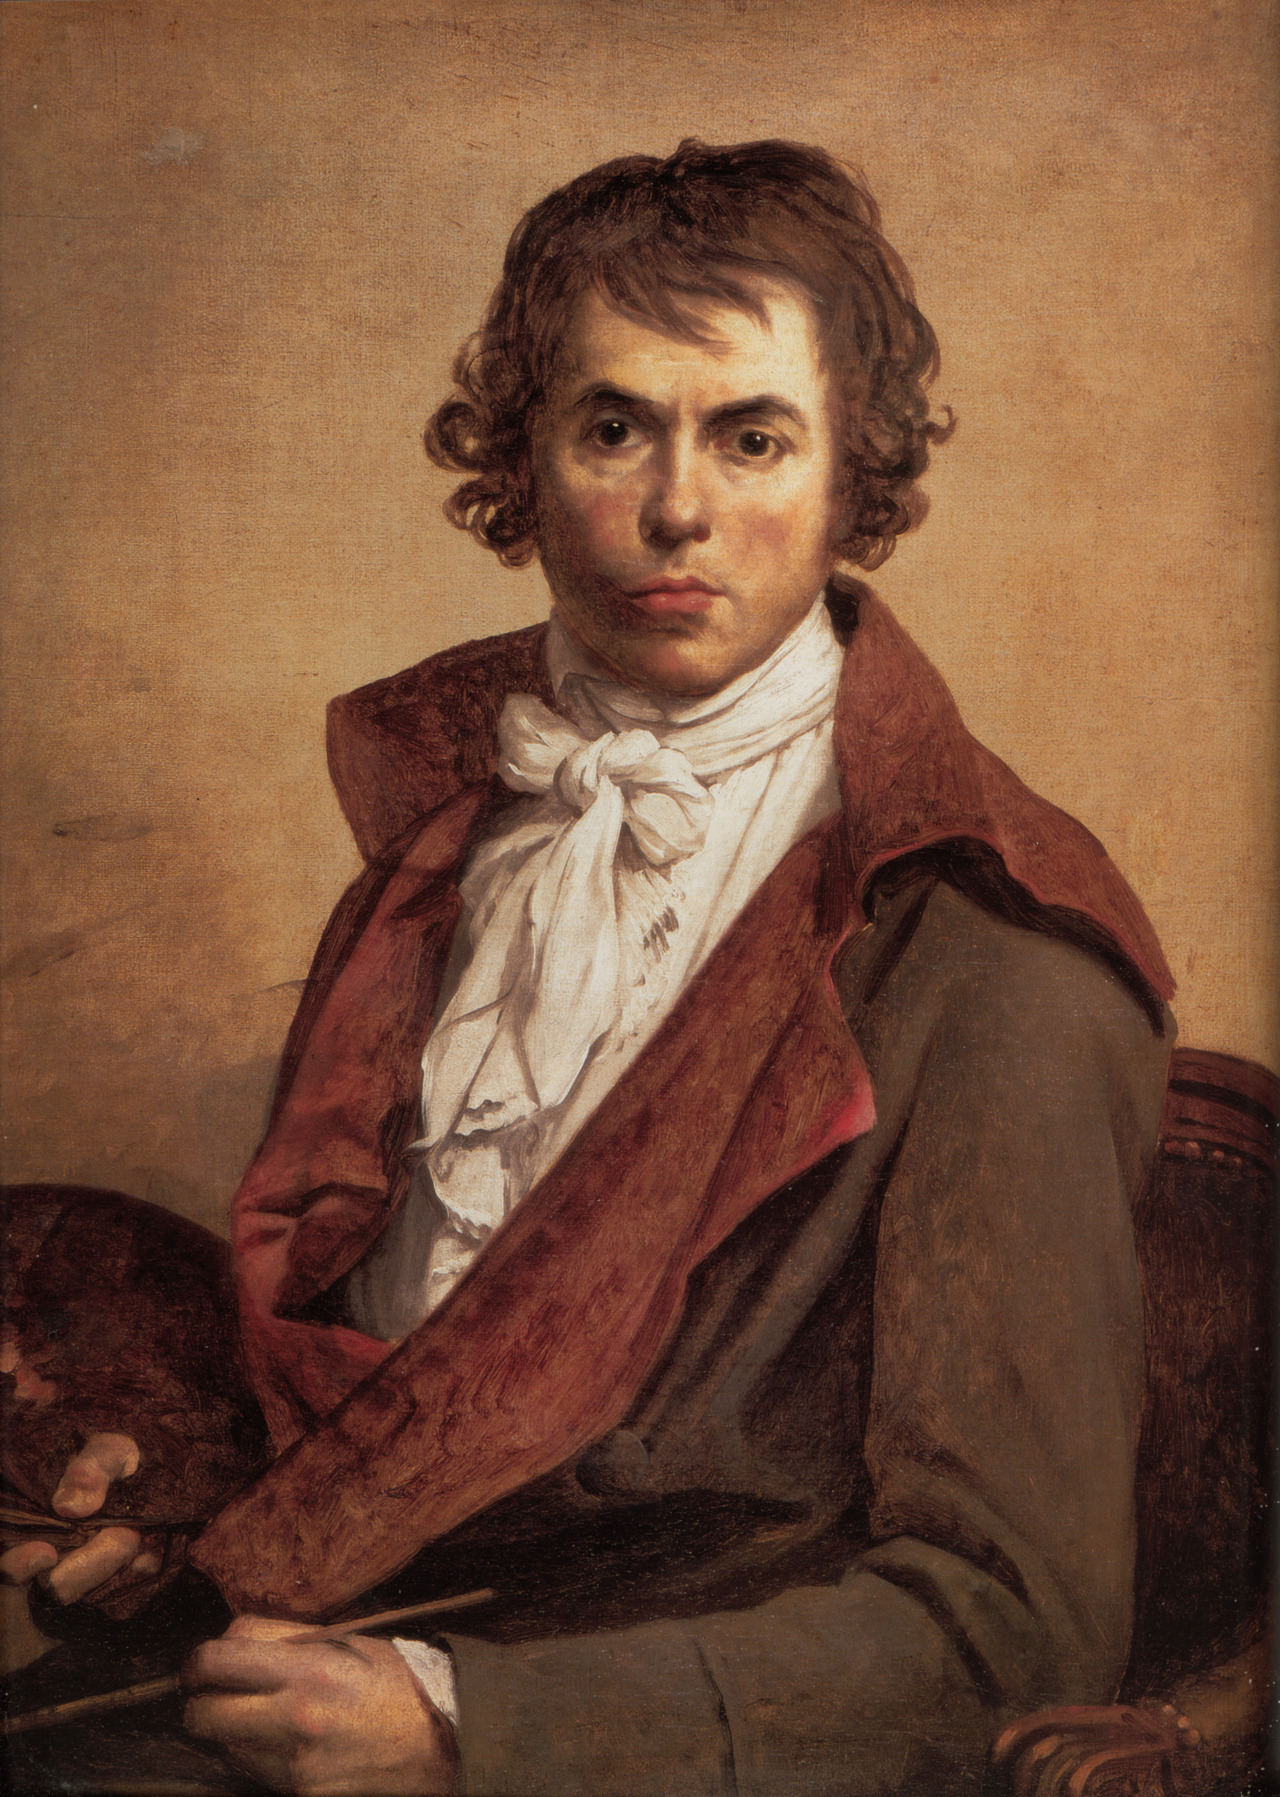 "Self Portrait, 1794 French painter Jacques-Louis David suffered, due to a fencing incident, from sword wounds to his face and mouth, visible in this self portrait. The scars near his mouth eventually caused an asymmetry in his facial expression and made it difficult to eat and talk. There are also records of a facial ""growth"" or swelling, but David may have been so self conscious of his disfigurement that he did not portray the full extent of it in his self portrait. Source"